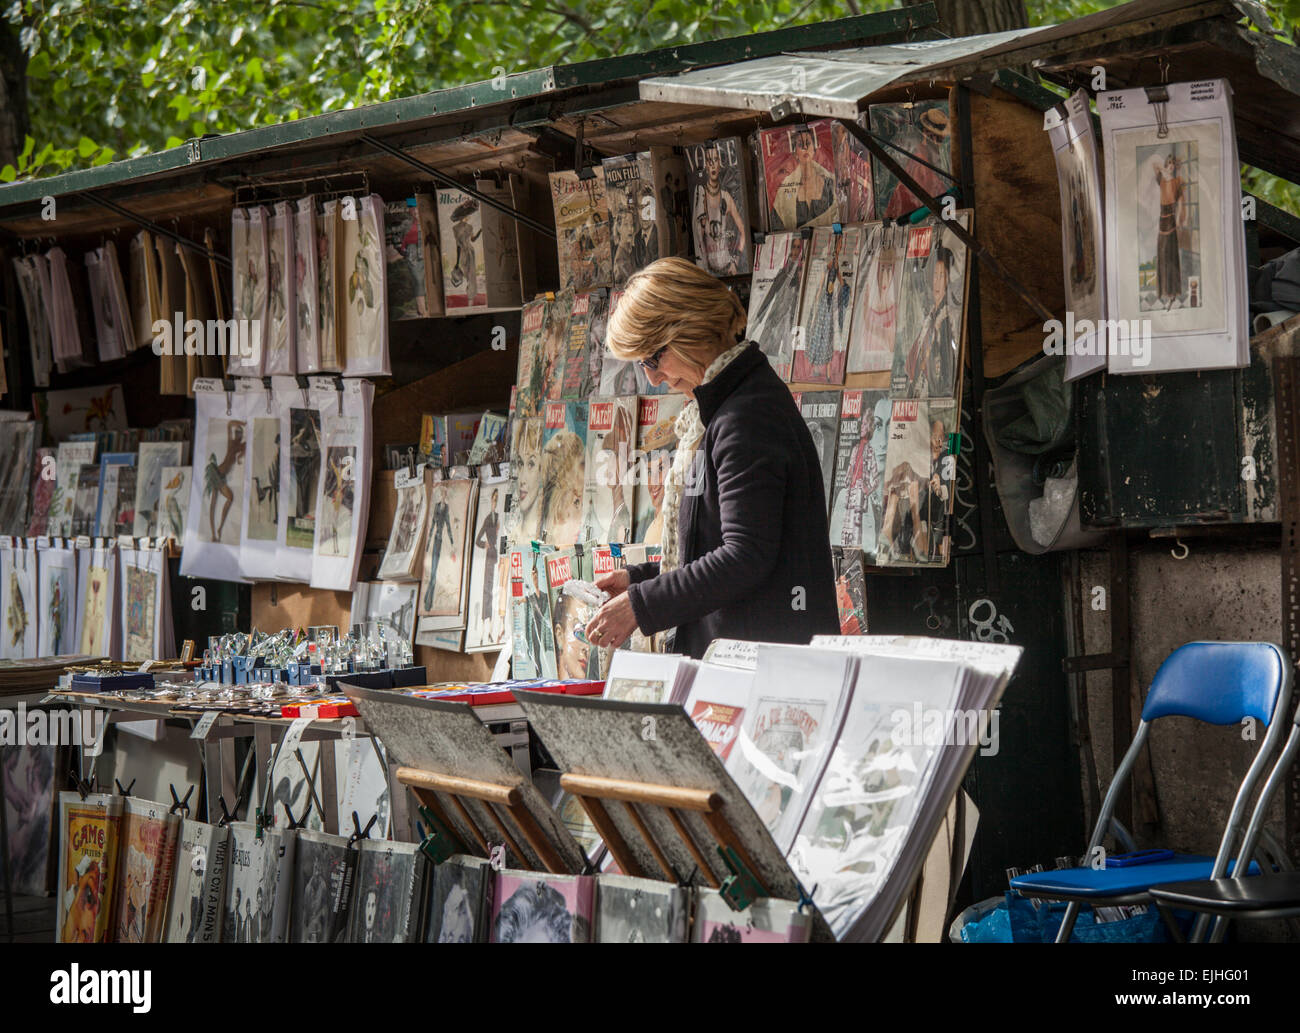 Bookseller stalls by the Seine, Paris, France - Stock Image